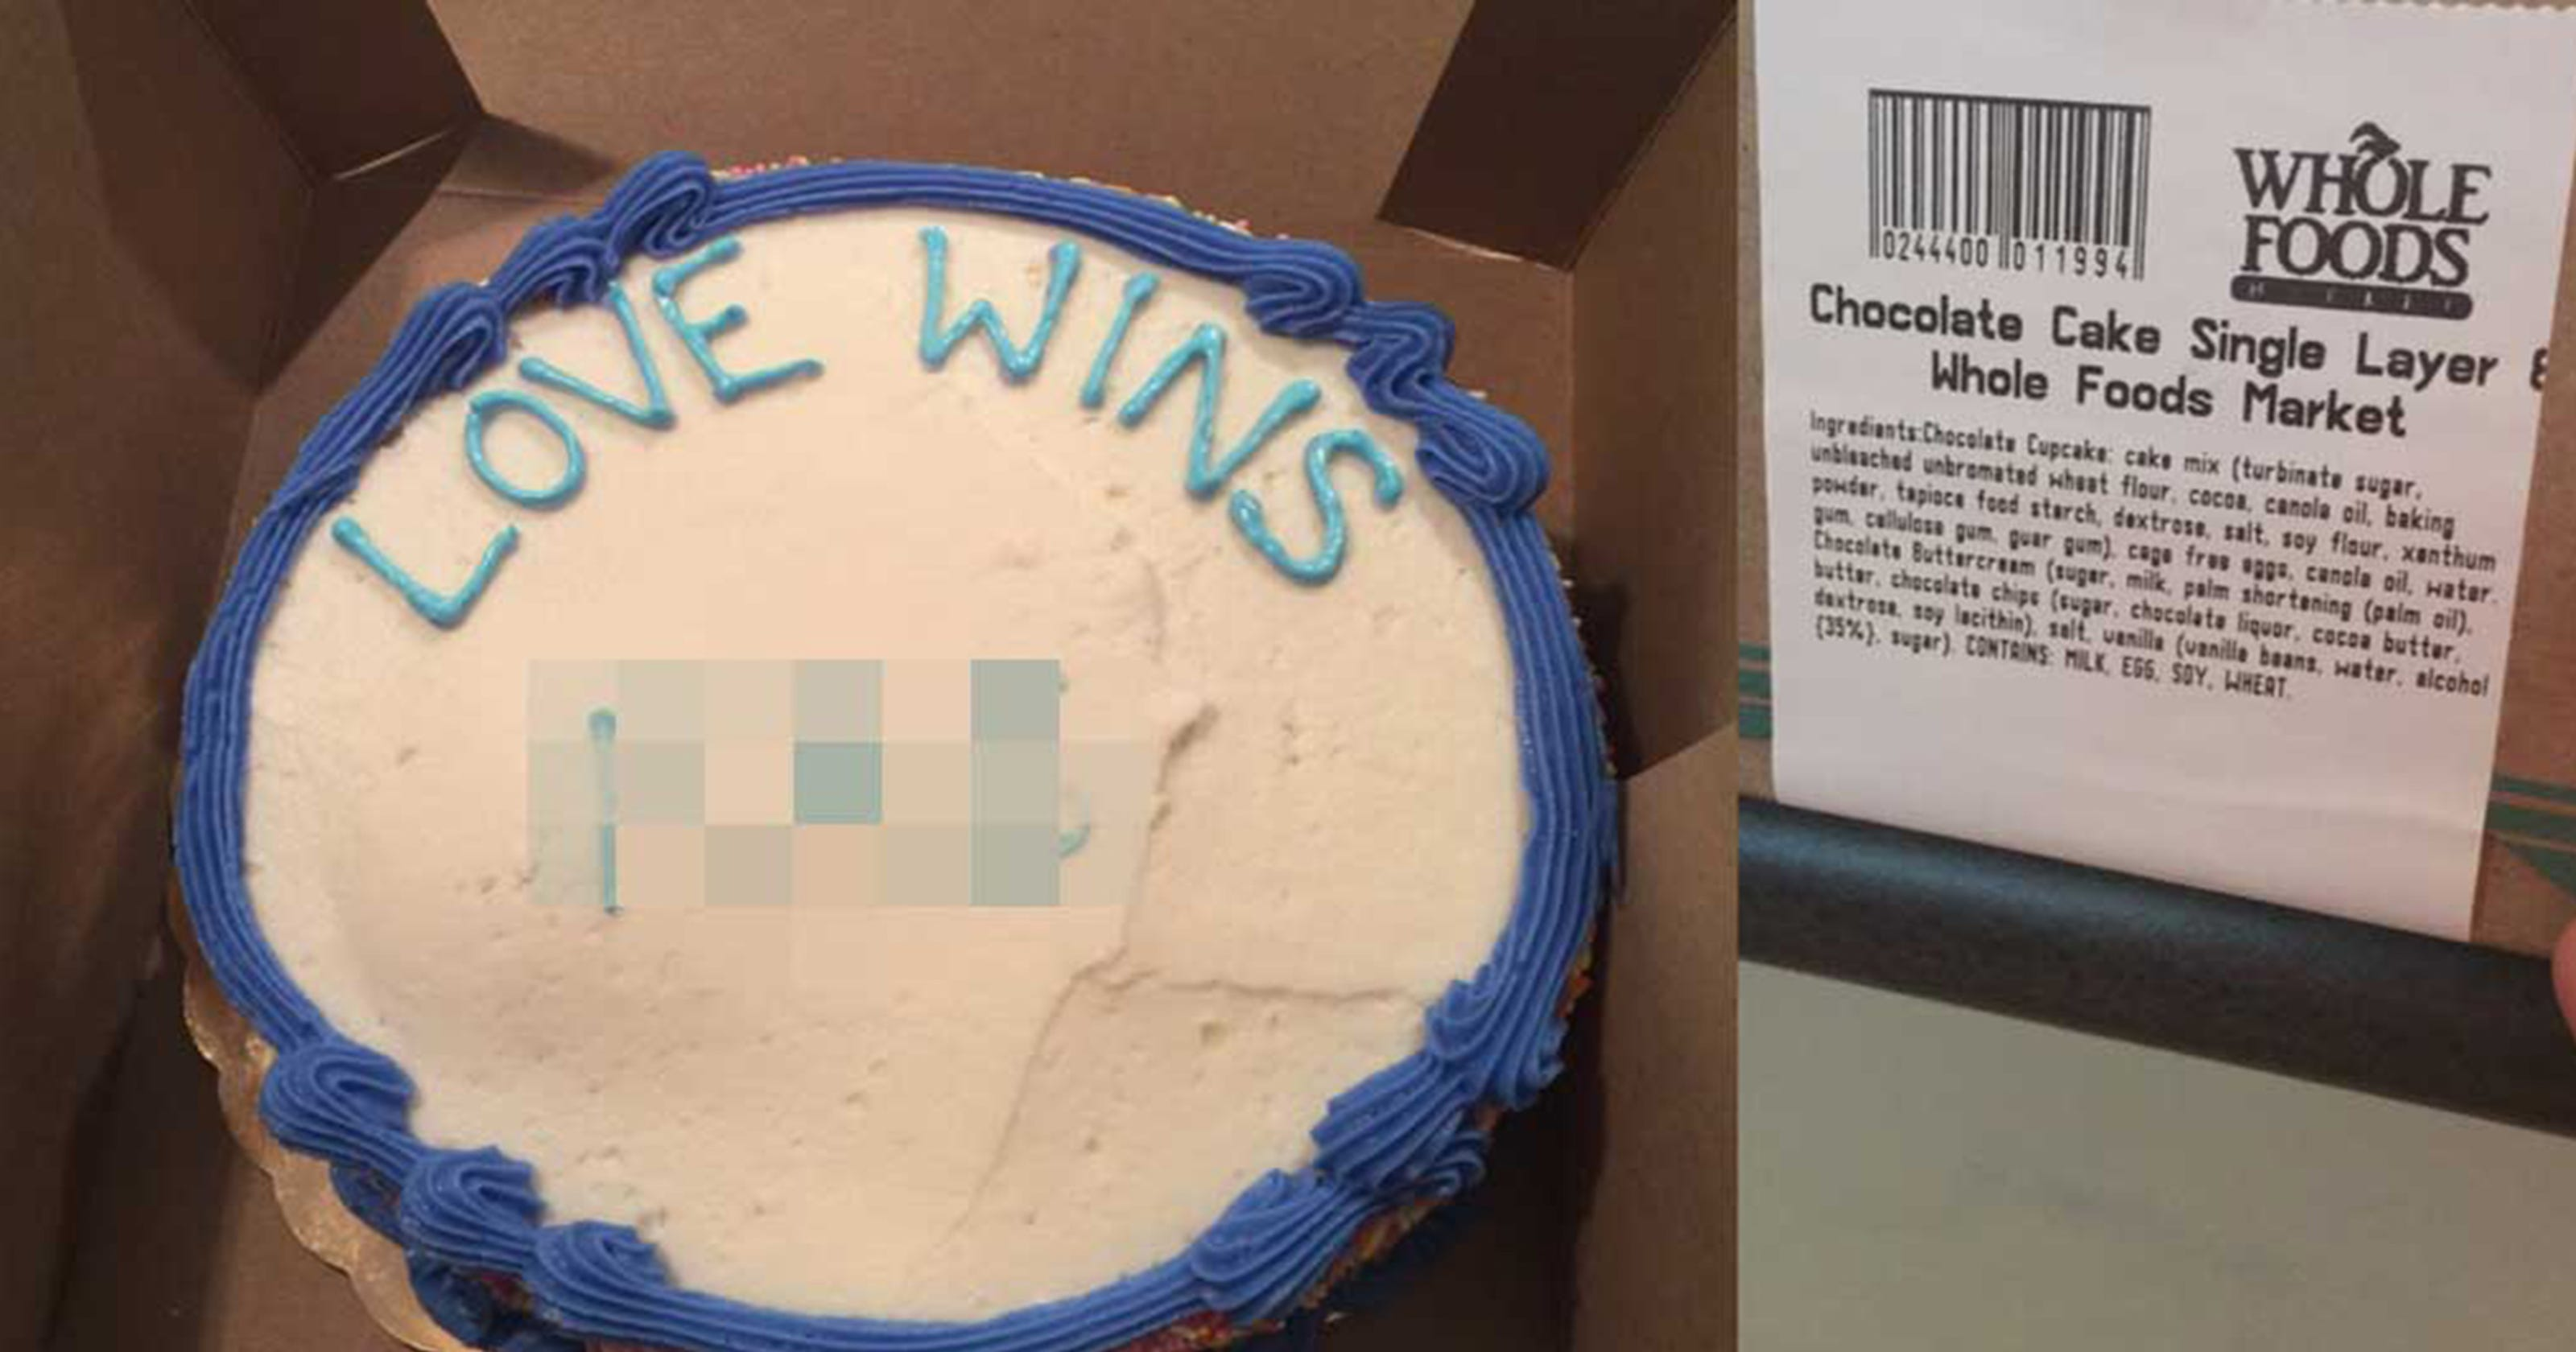 Pastor Sues Whole Foods Over Alleged Gay Slur On Cake